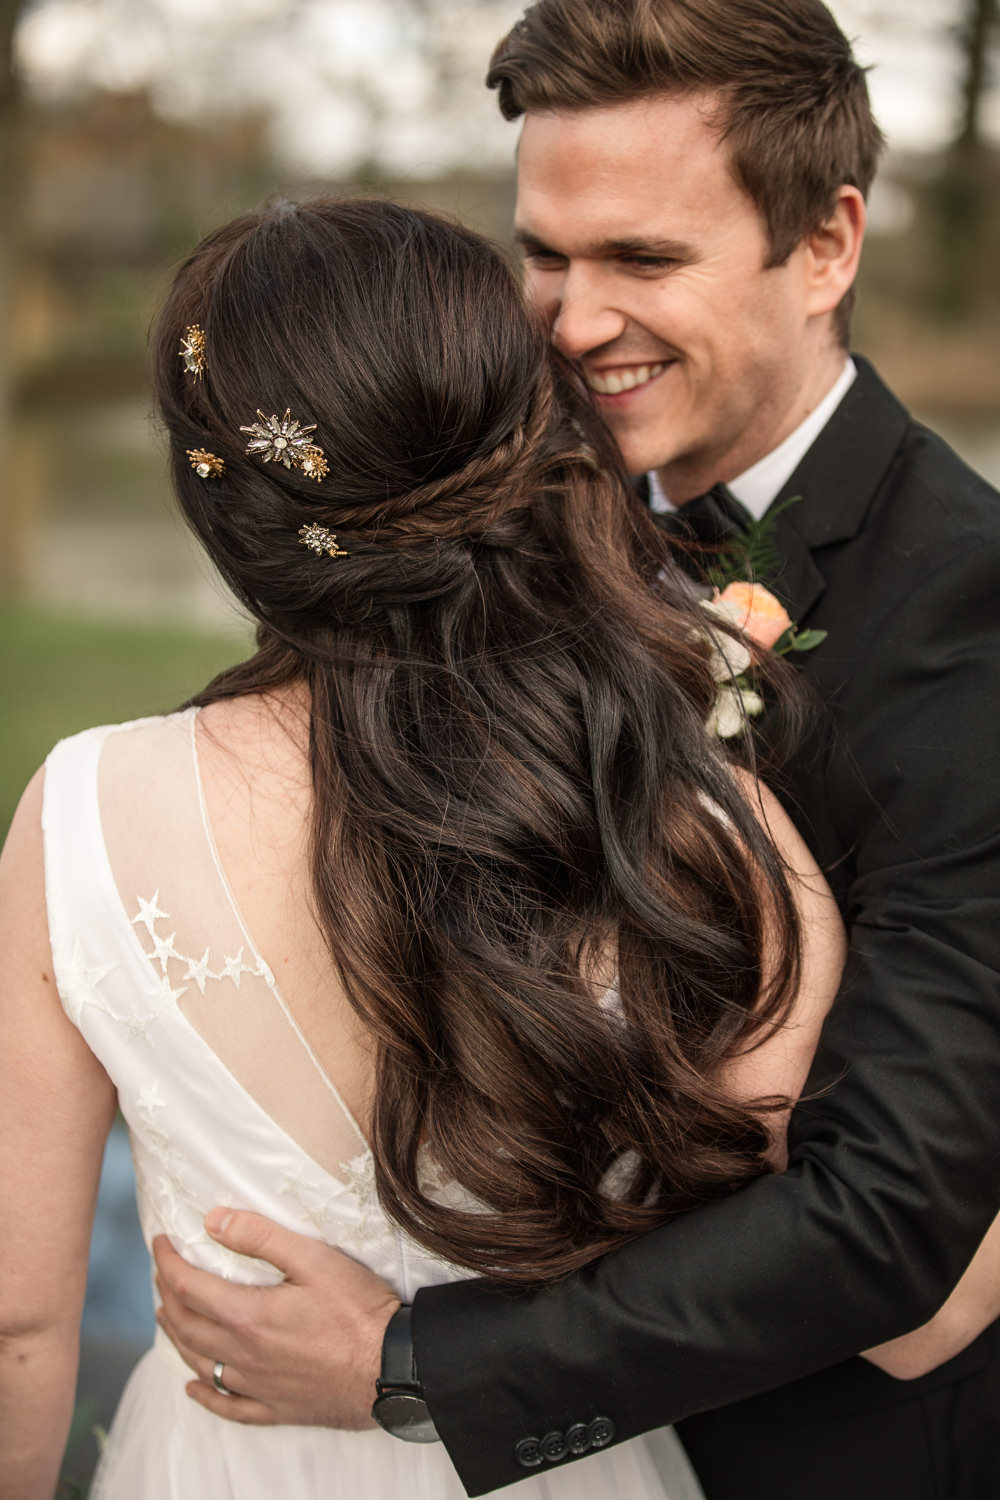 Bride Bridal Hair Style Up Do Waves Pins Accessories Celestial Wedding Inspiration Becky Harley Photography